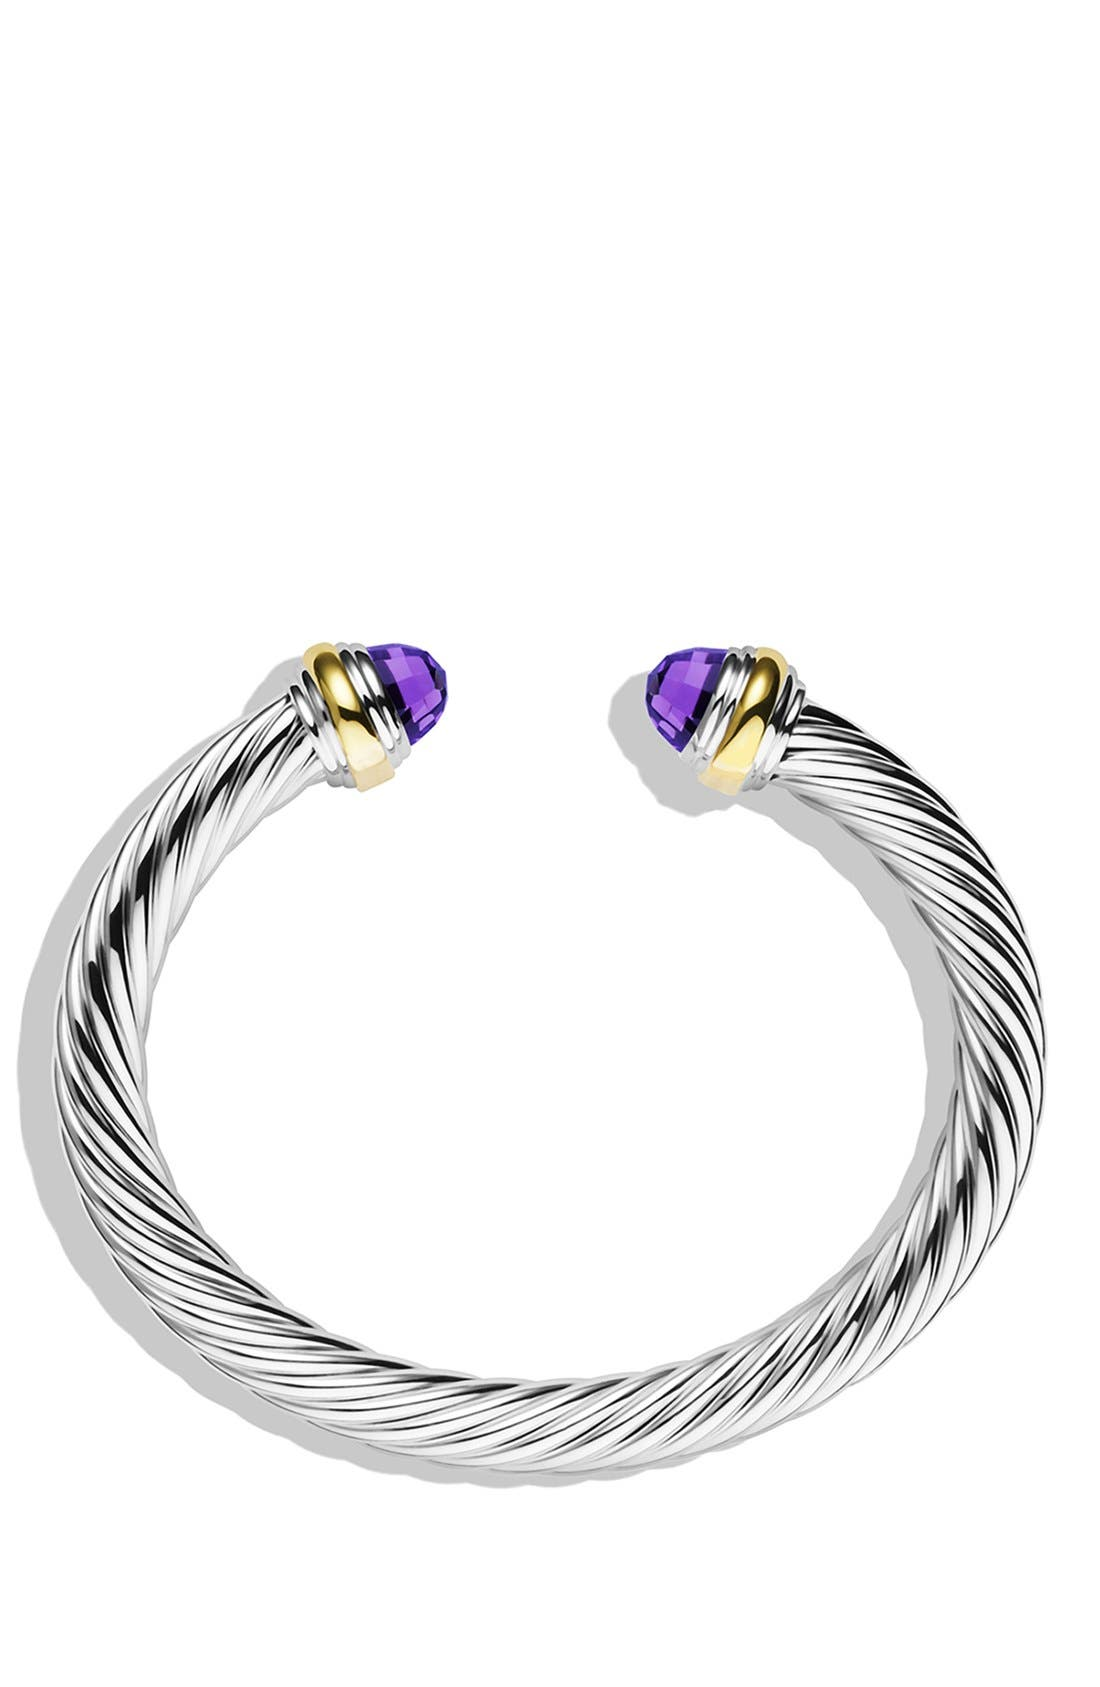 Alternate Image 2  - David Yurman Cable Classics Bracelet with Semiprecious Stones